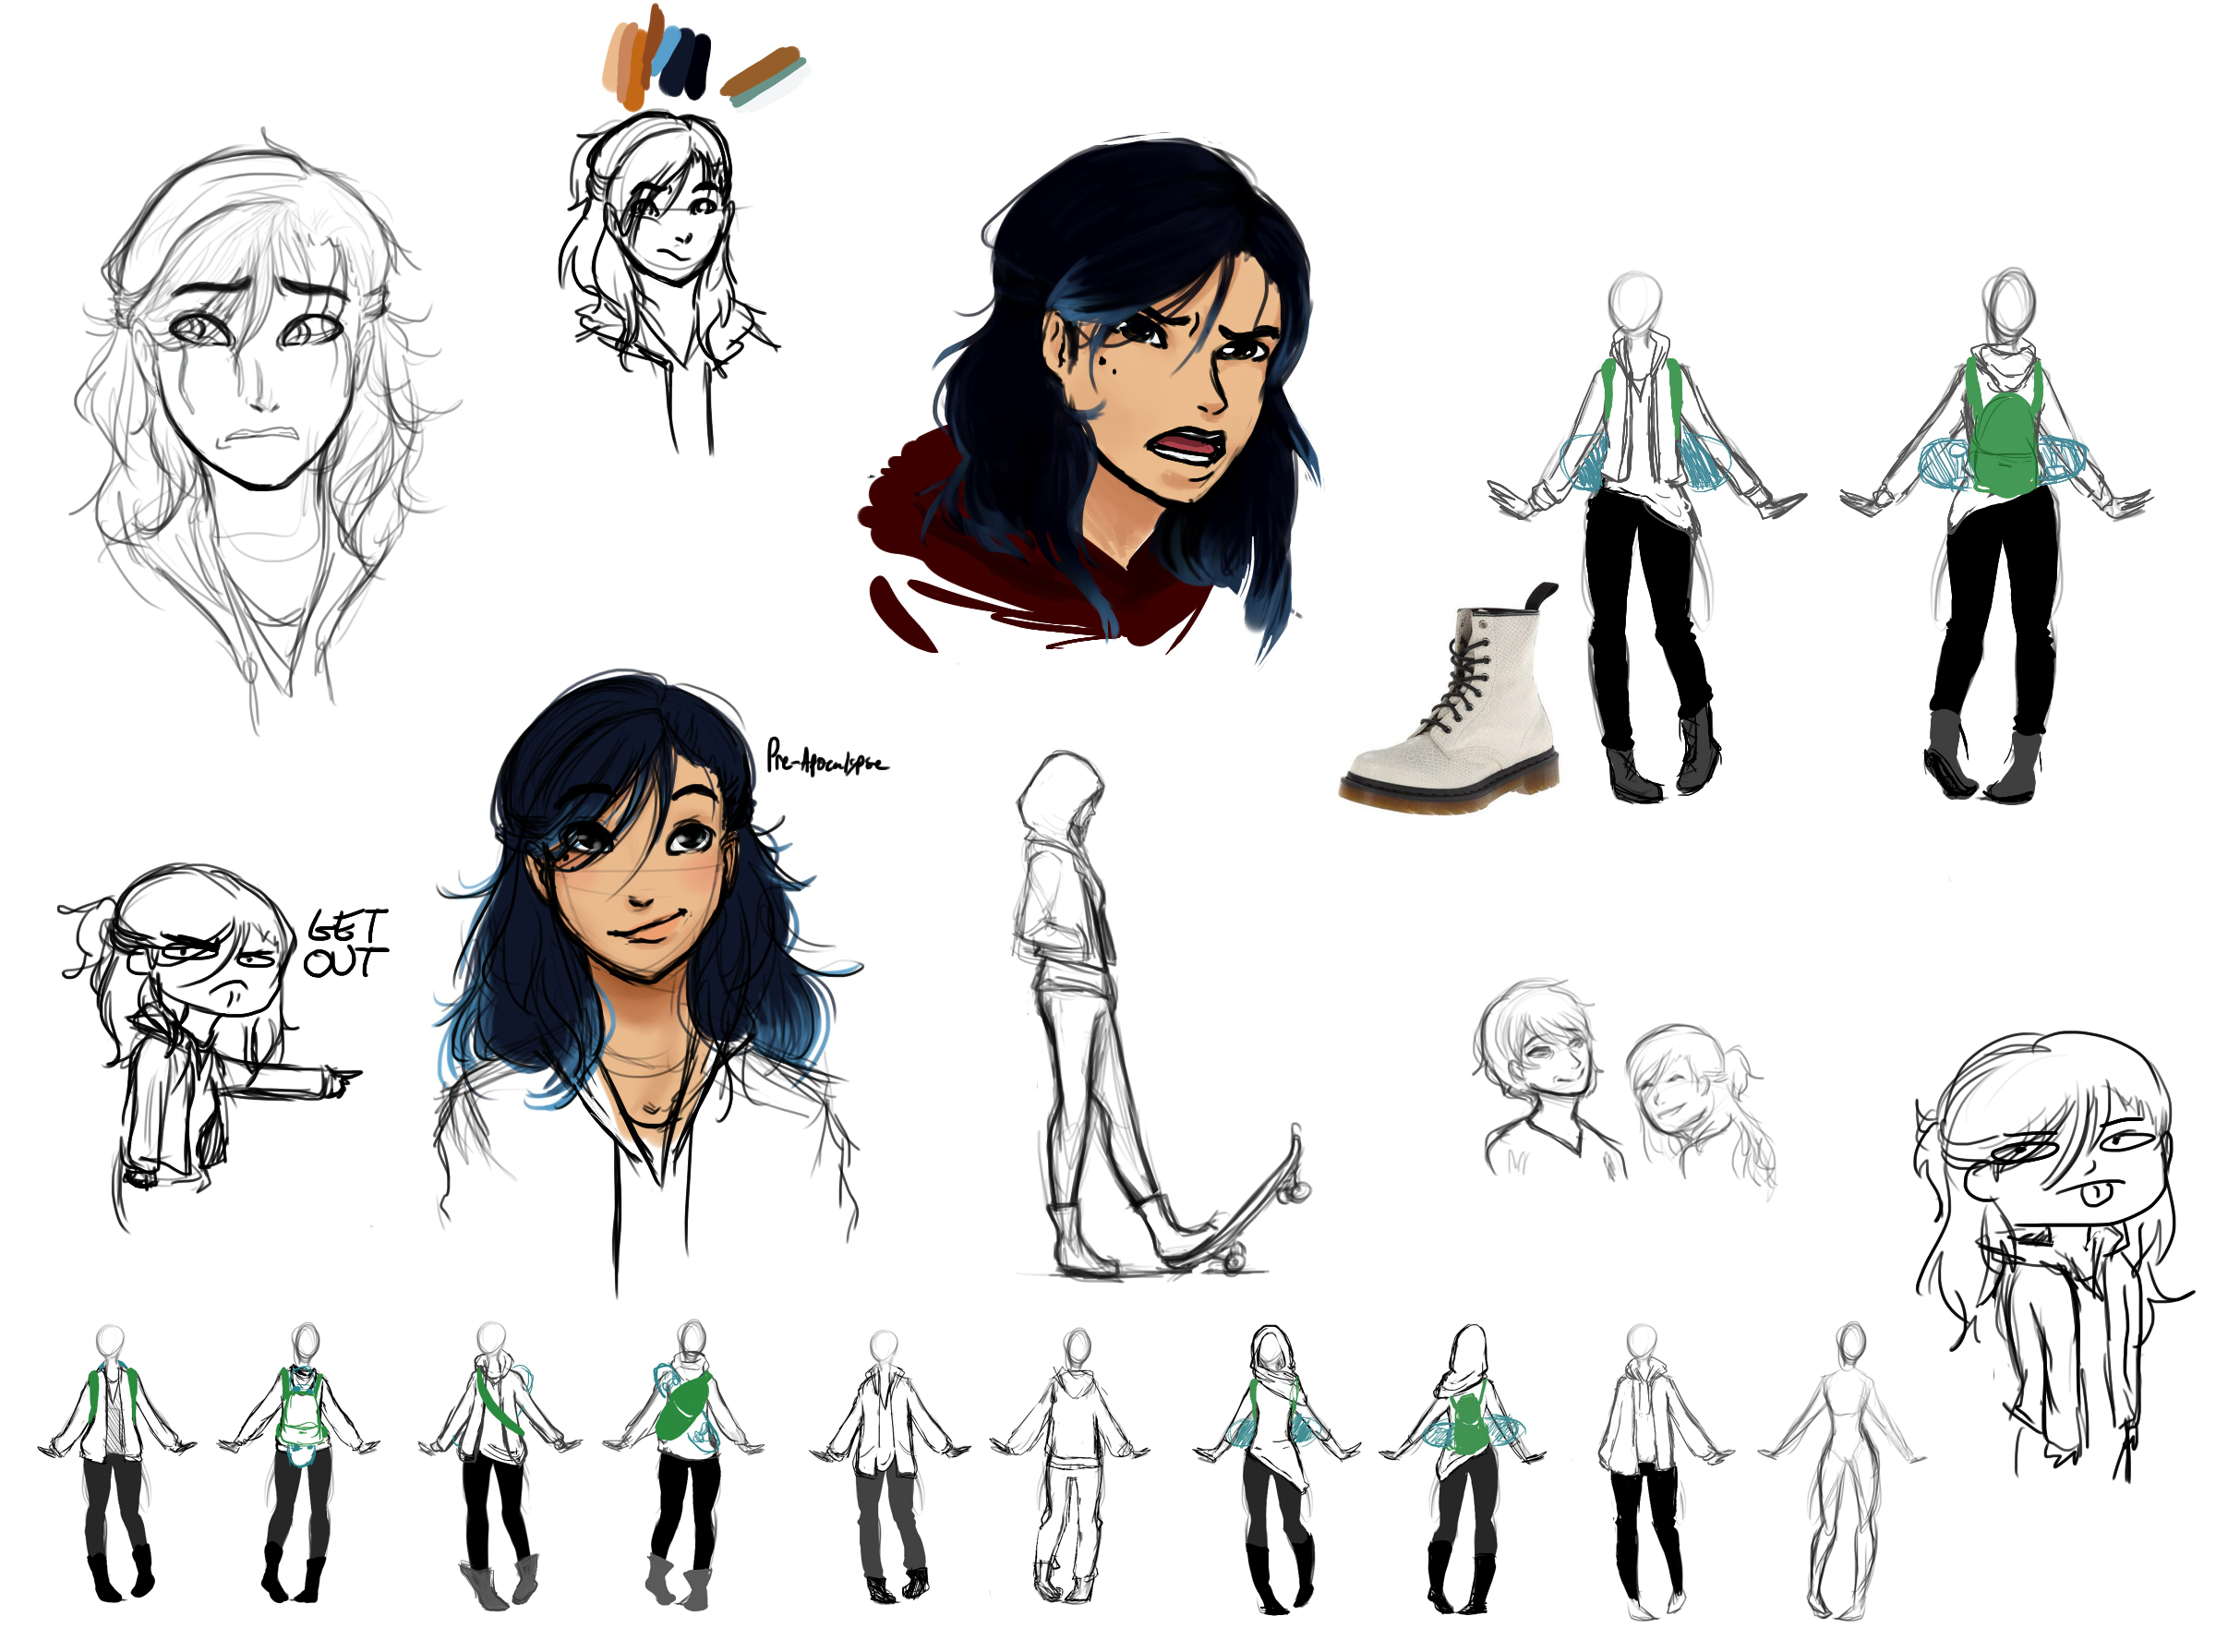 Designing the protagonist & playing with her look.